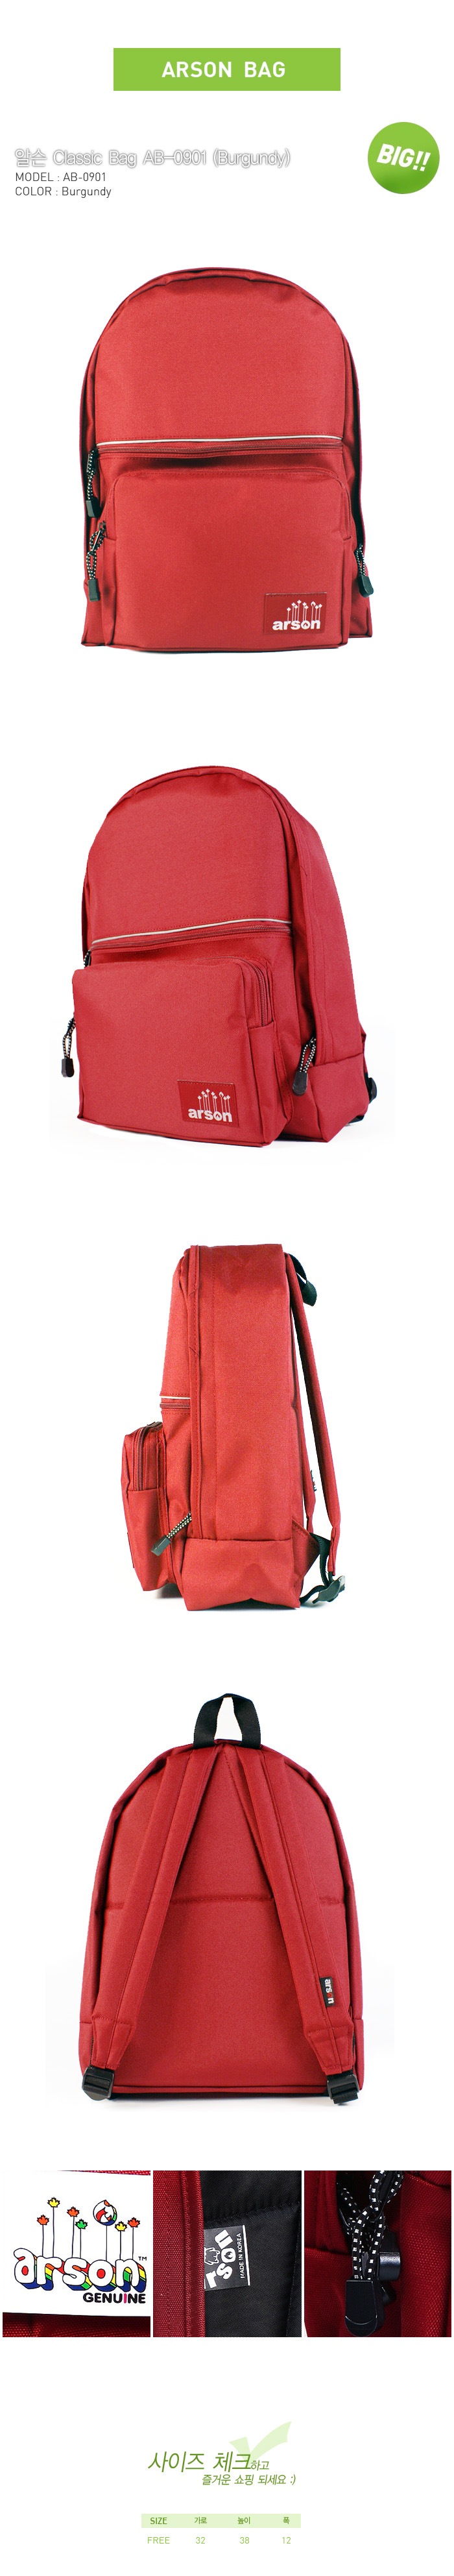 [ ARSON ] AB-0901 (Burgundy)/Backpack School Bag